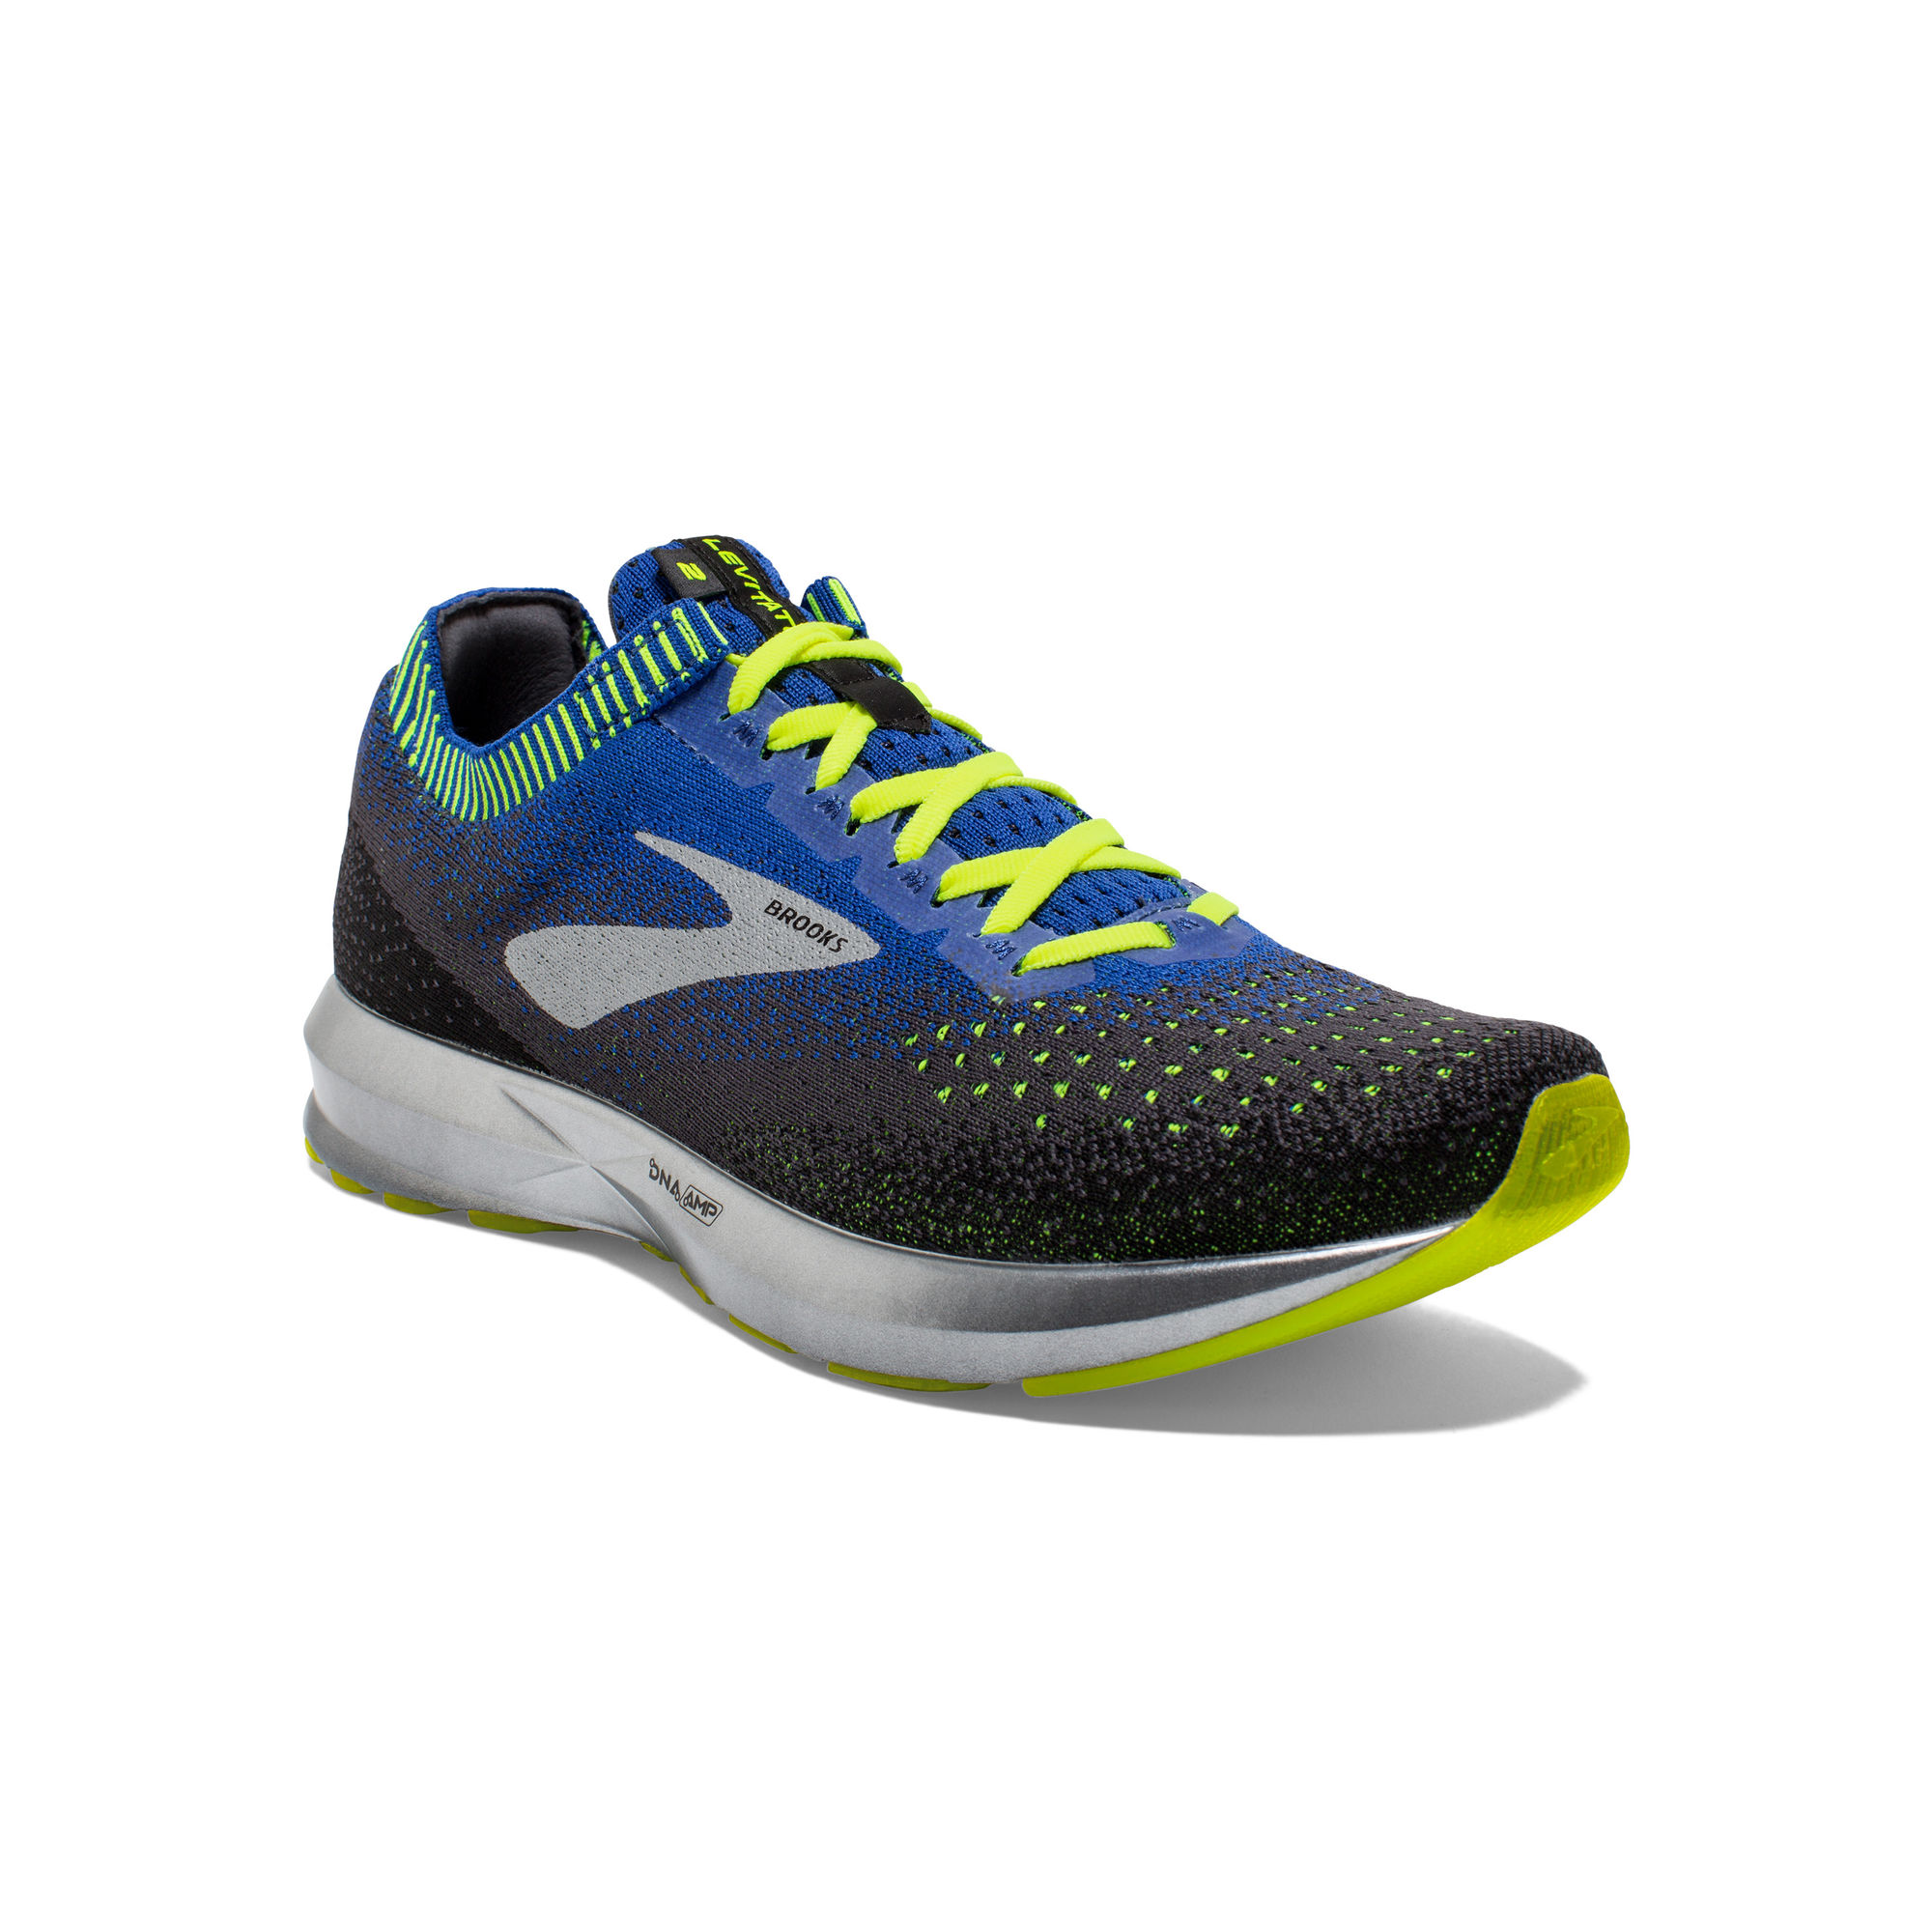 Brooks Levitate 2 in Blau Schwarz Gelb